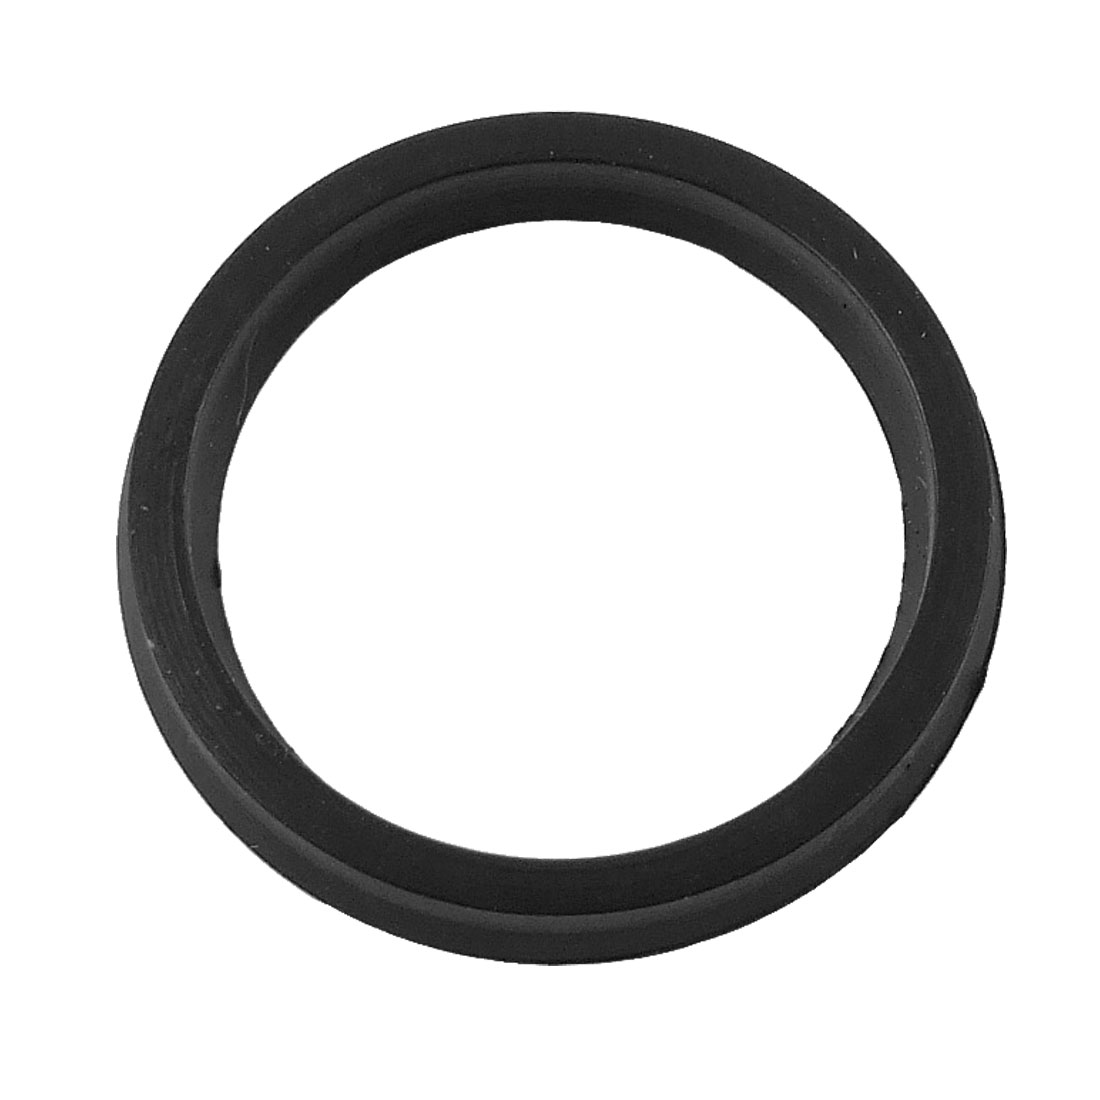 18mm x 22mm x 2.8mm MYA Type Single Lip Pneumatic Seal Gasket